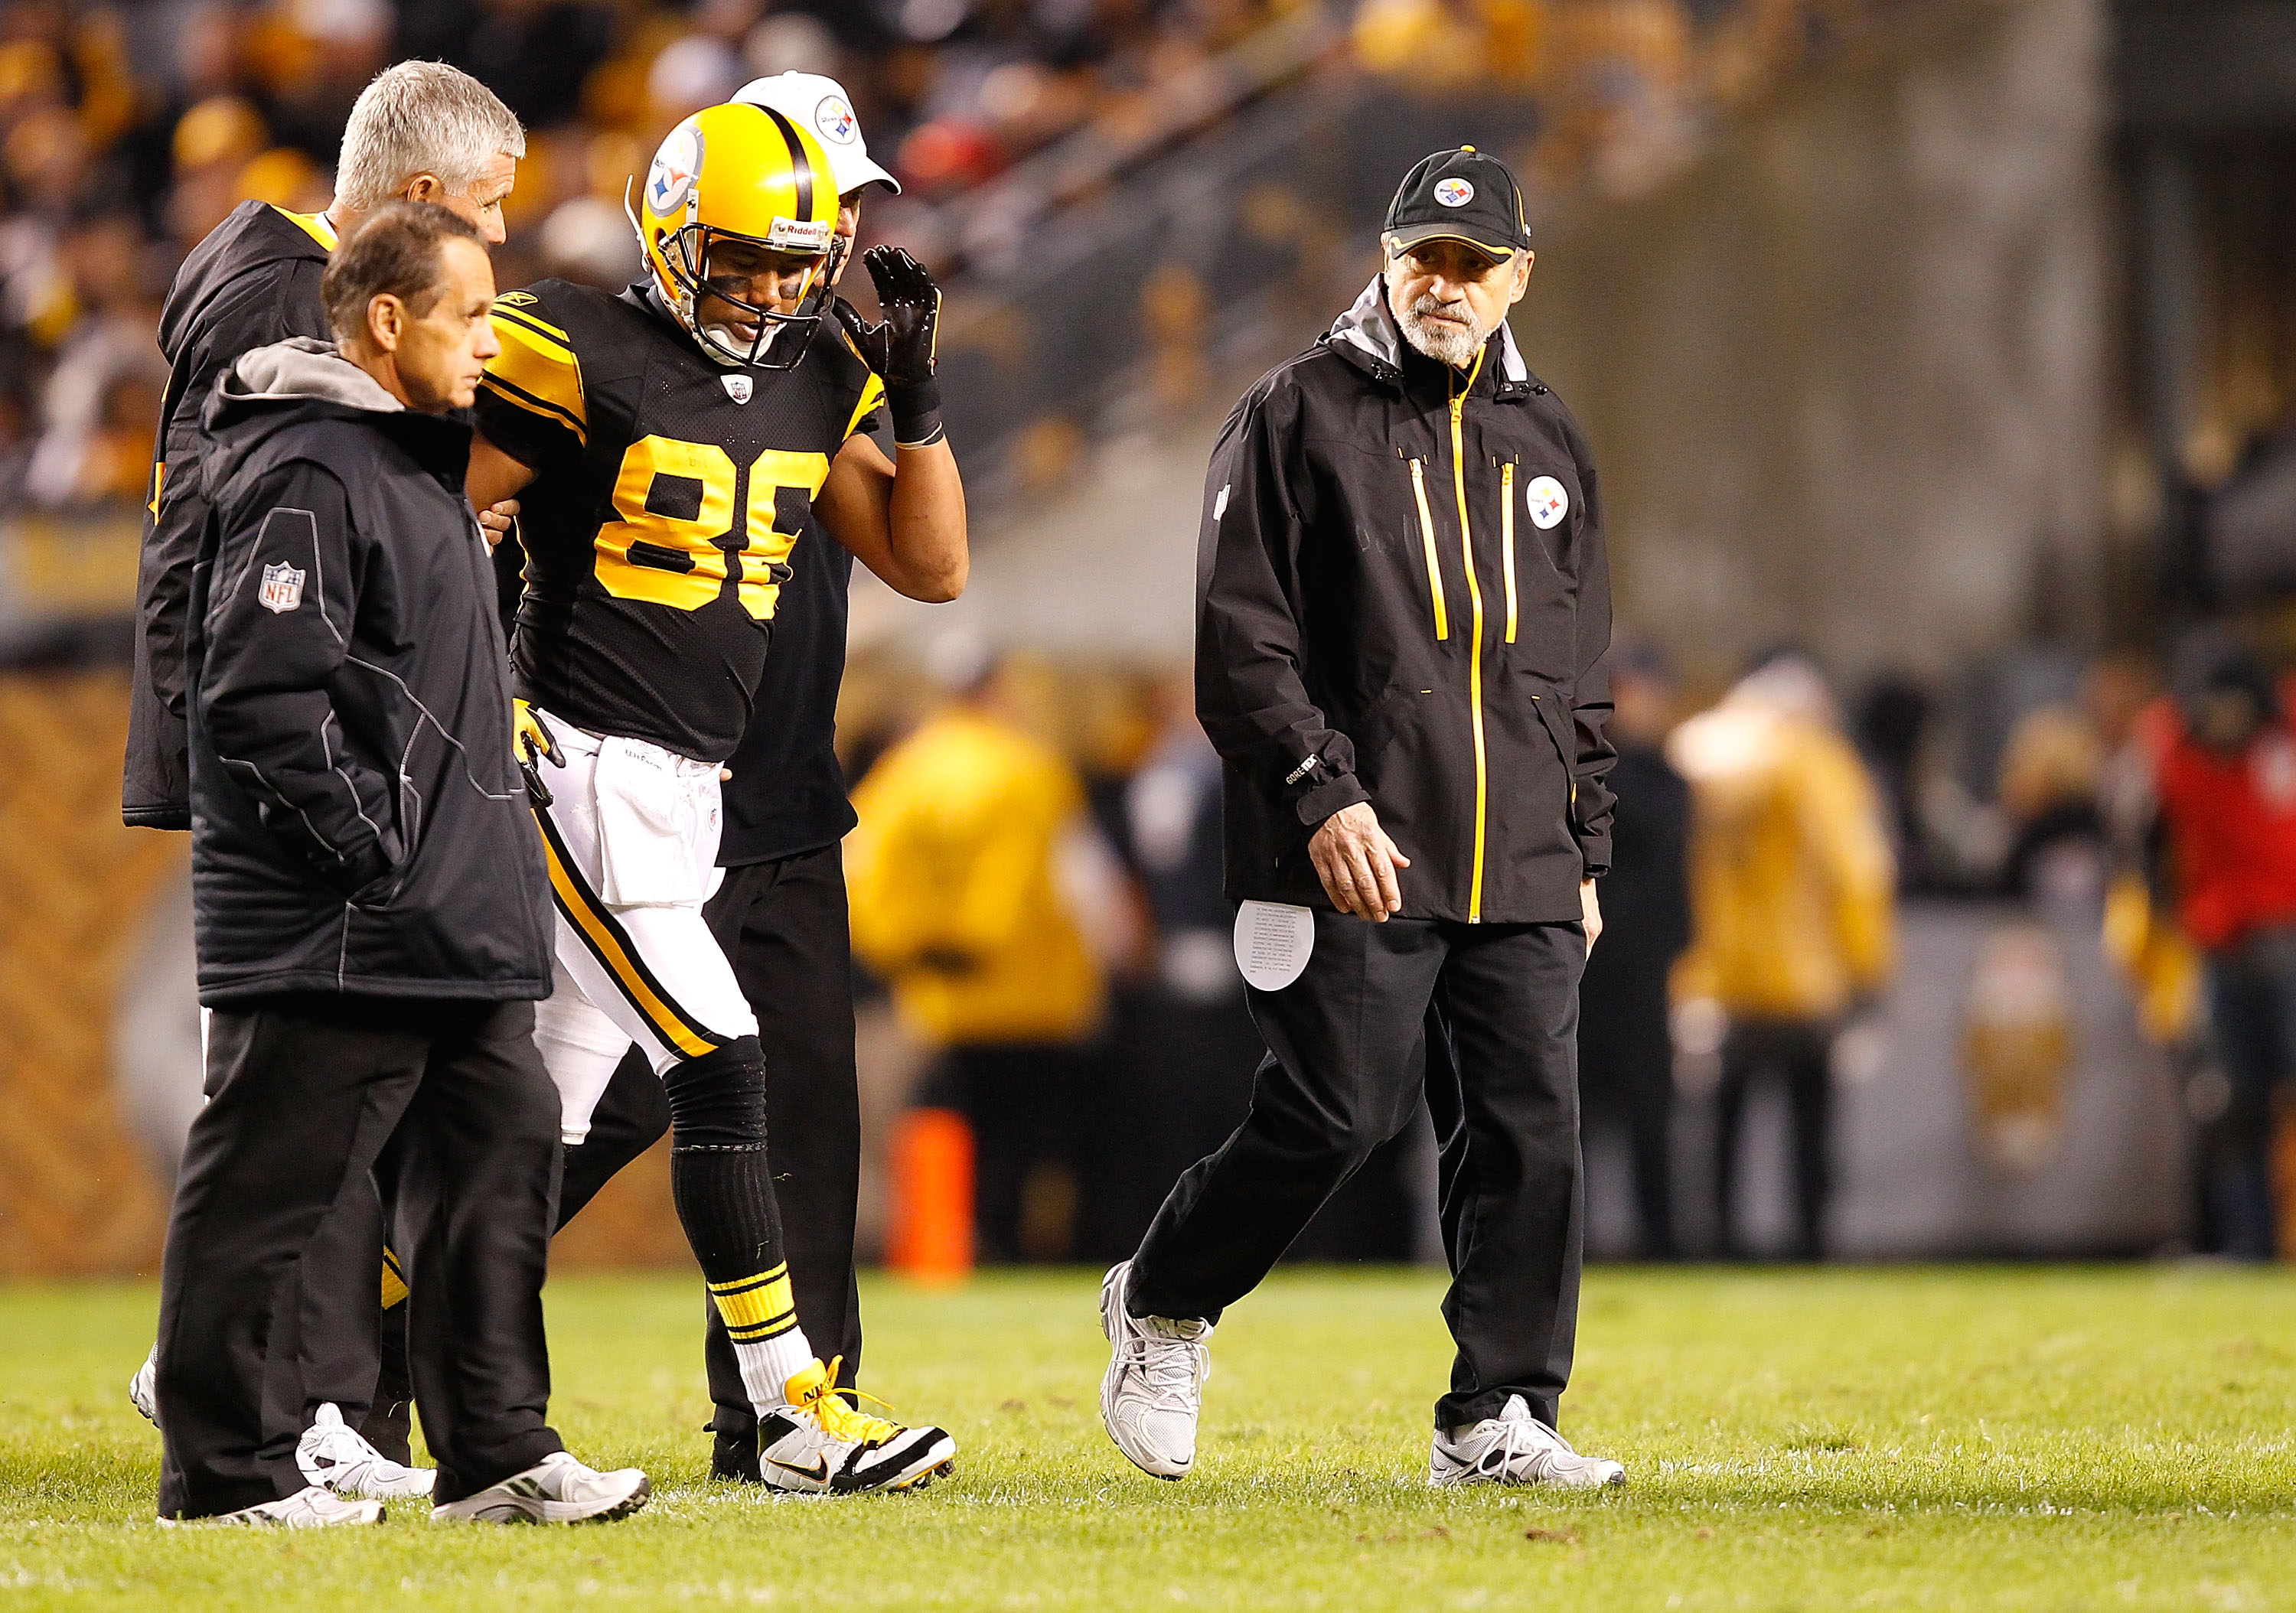 PITTSBURGH - NOVEMBER 14:  Hines Ward #86 of the Pittsburgh Steelers walks off of the field with help from the training staff after injuring himself during the game against the New England Patriots on November 14, 2010 at Heinz Field in Pittsburgh, Pennsy